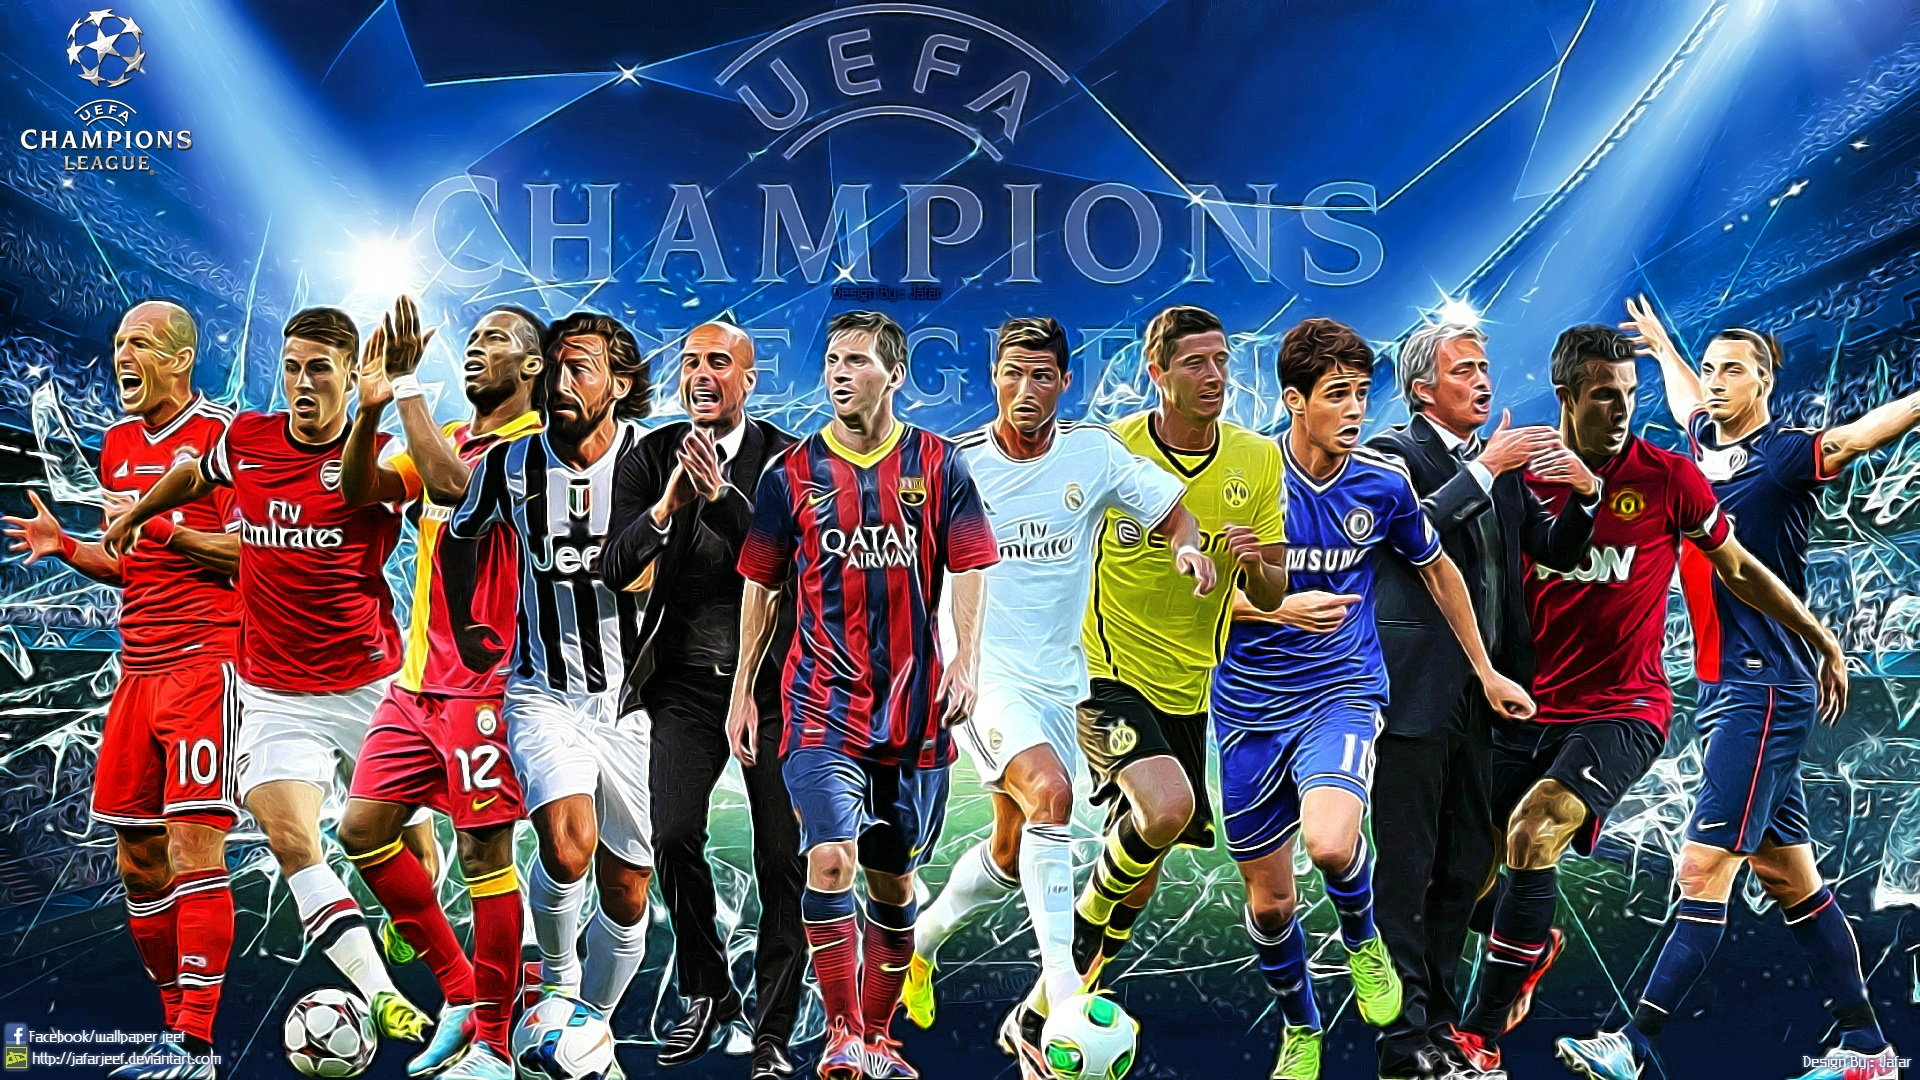 Champions League uhd wallpapers   Ultra High Definition Wallpapers 1920x1080